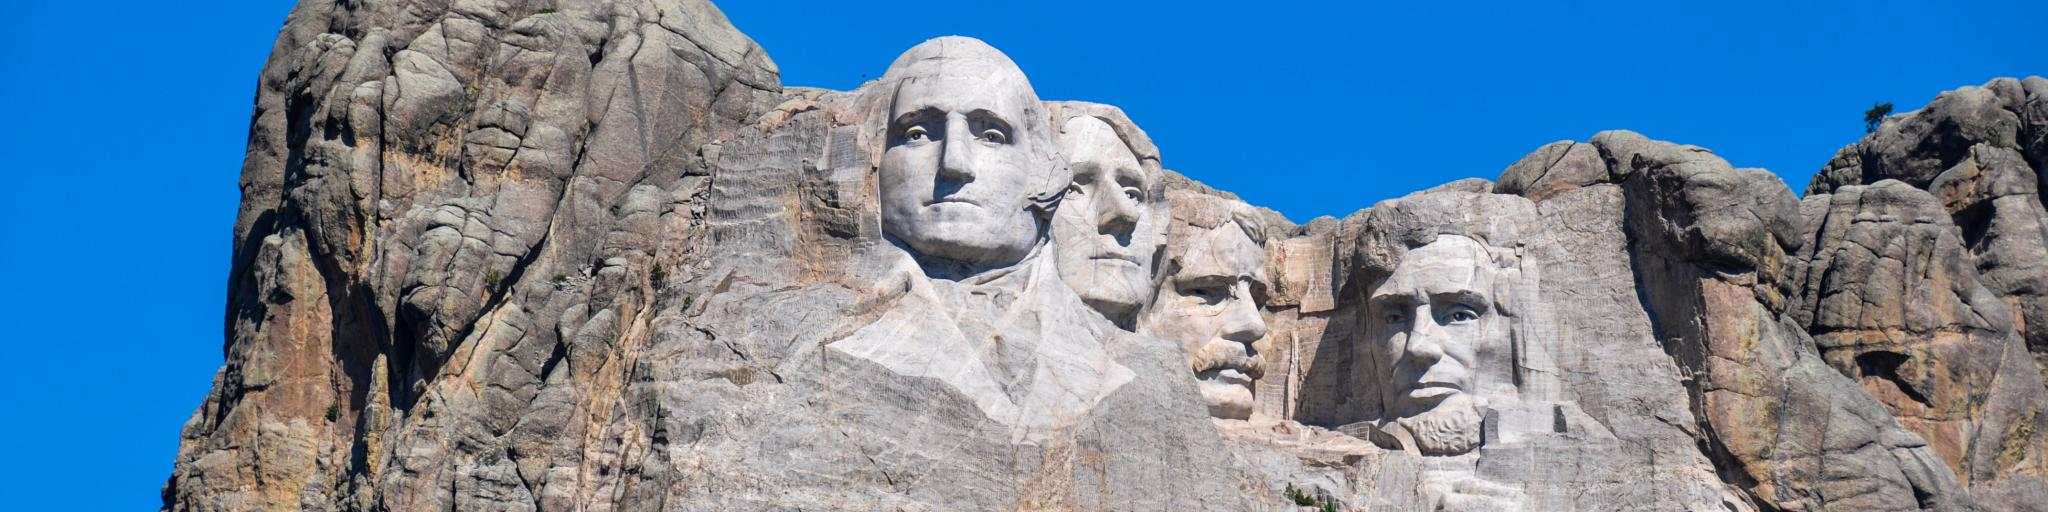 A scenic view of the 60-ft high granite sculpture of the four presidents of the United States in the Black Hills with a green forest at the foot of the mountain in a sunny morning in Mount Rushmore National Memorial Monument in South Dakota